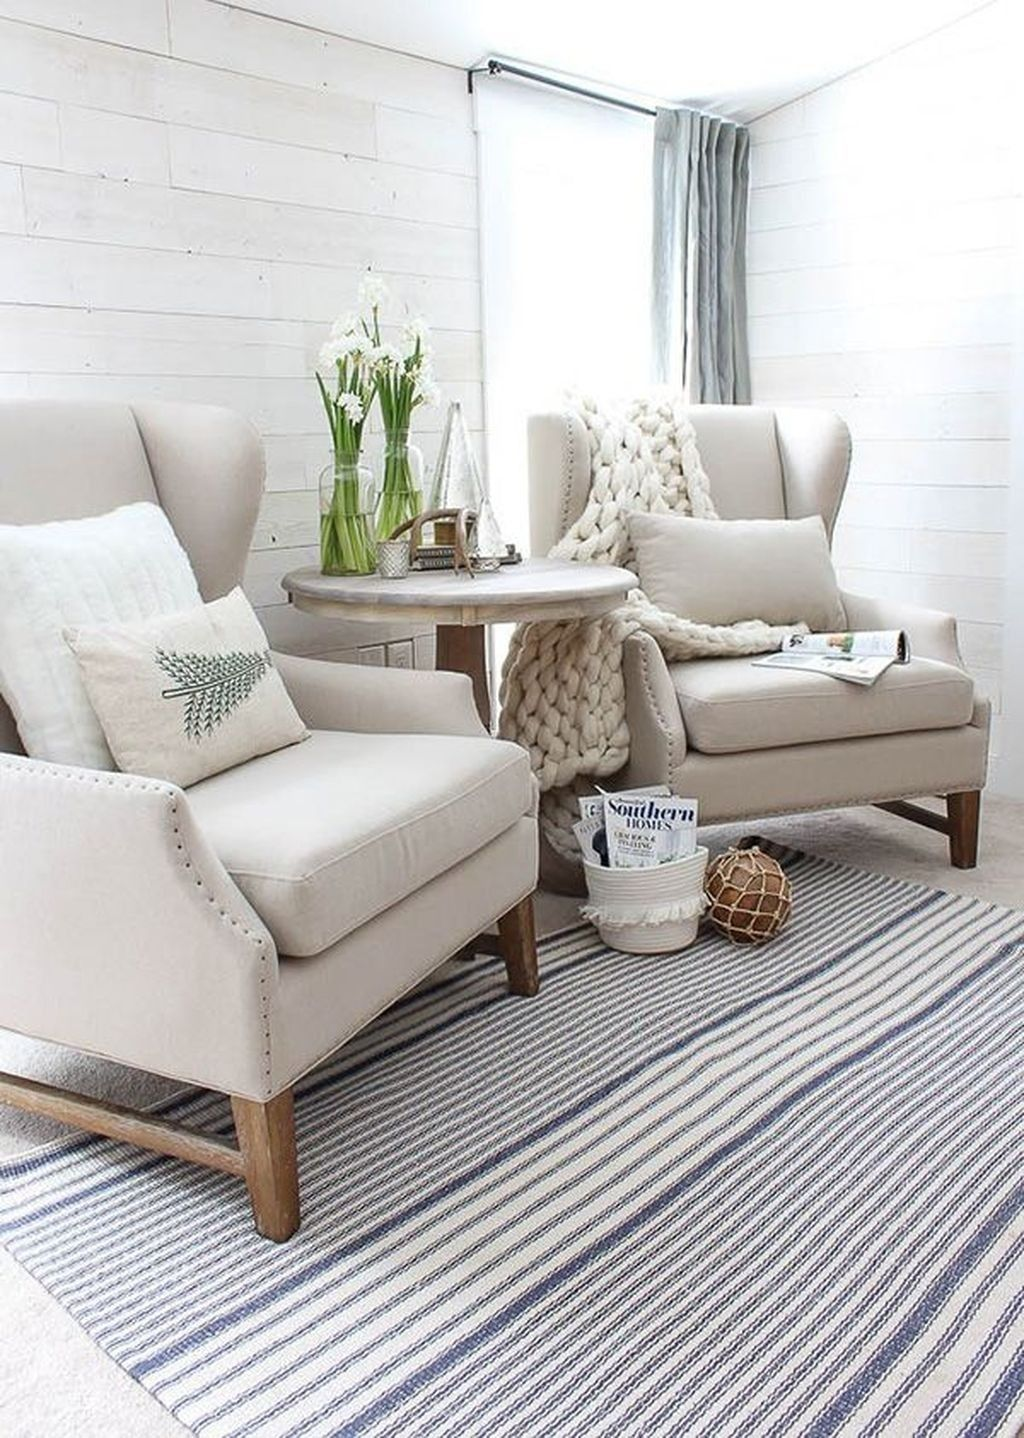 40 amazing modern farmhouse style decoration ideas for on amazing inspiring modern living room ideas for your home id=54019